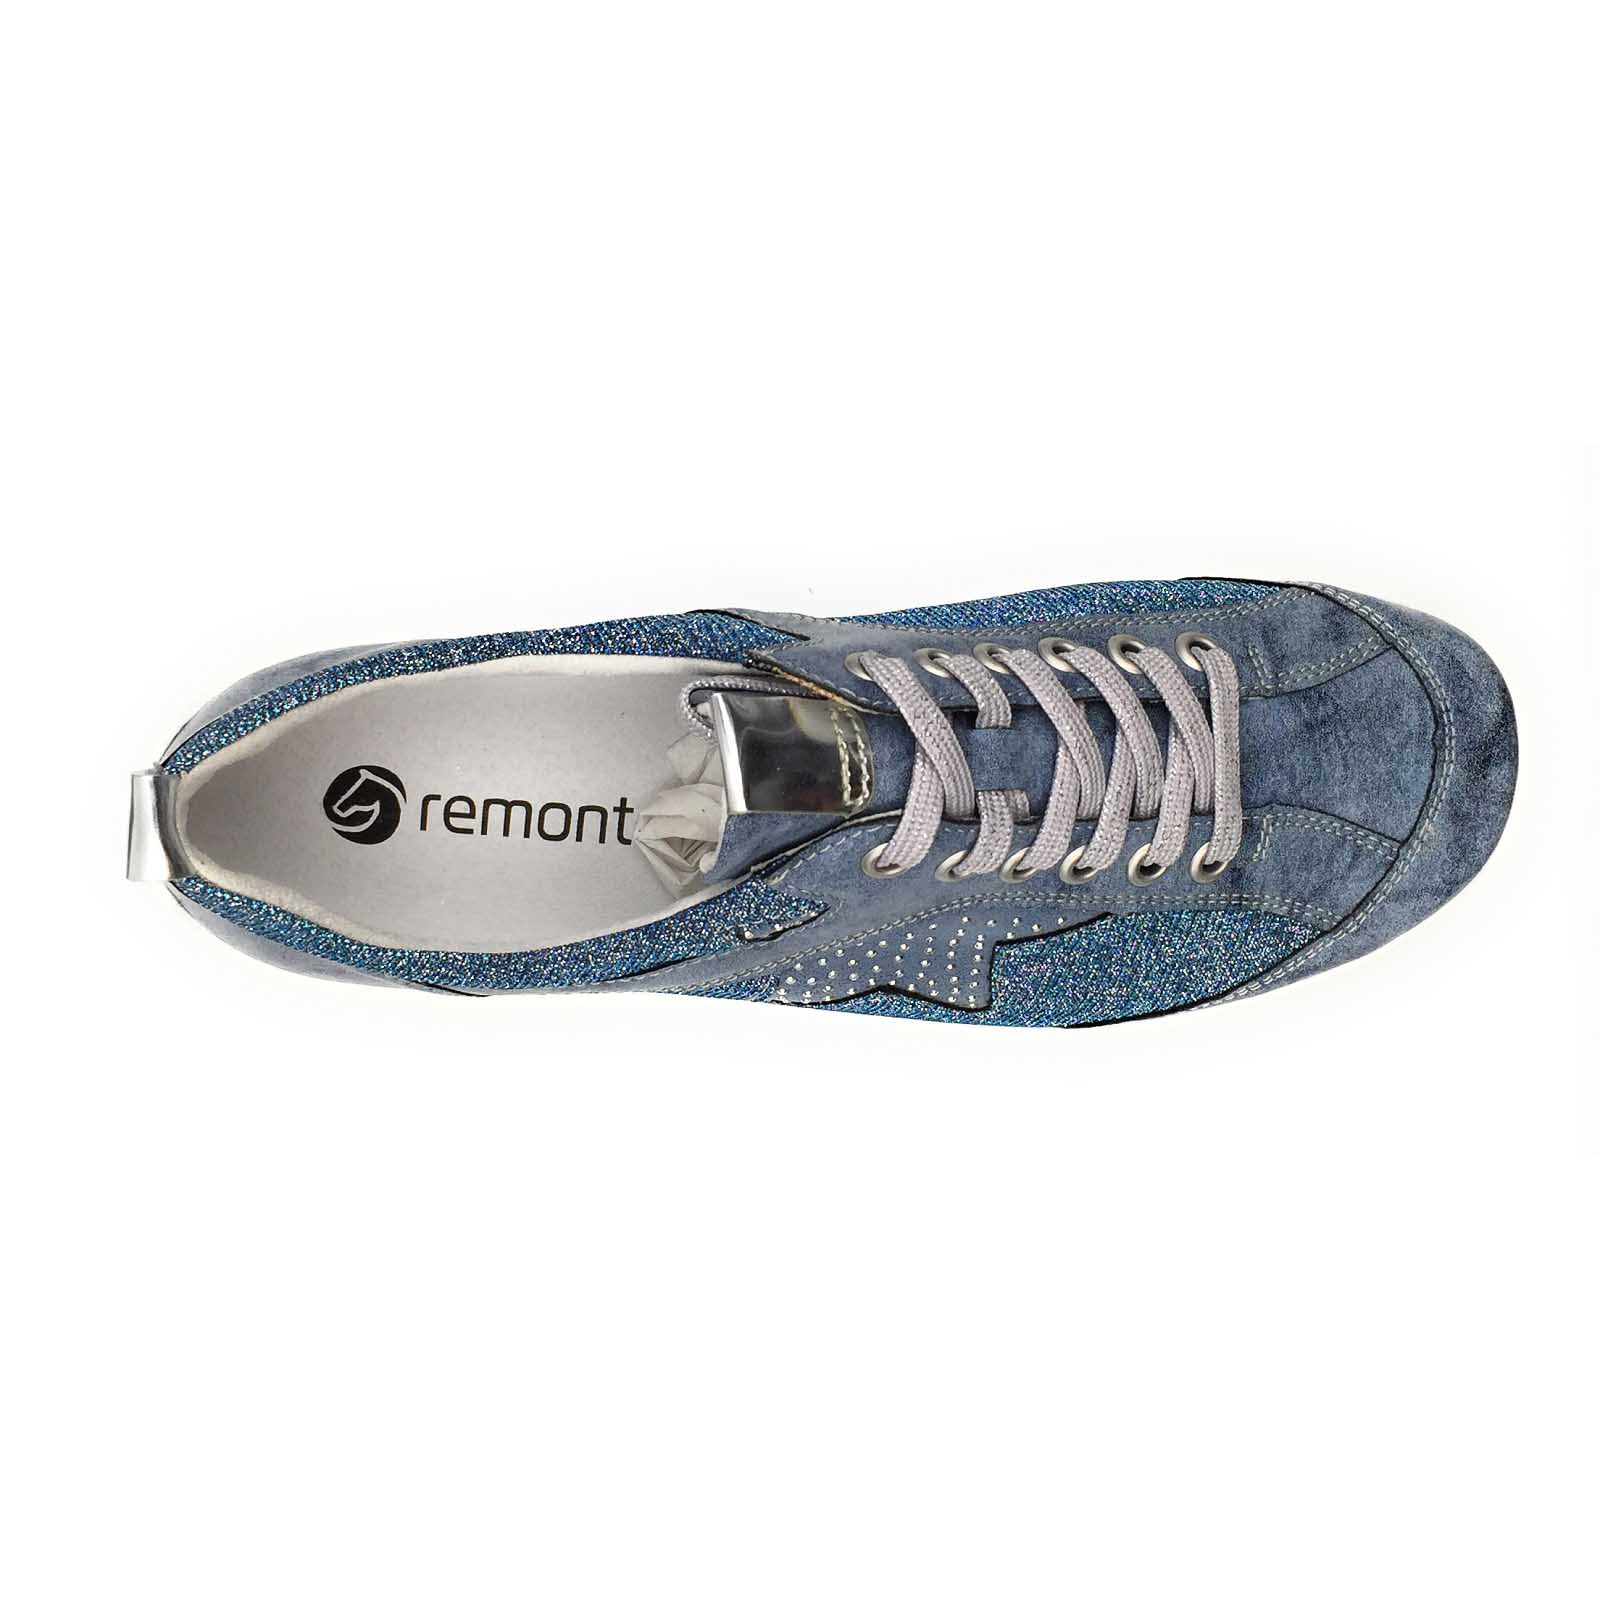 Remonte baskets mode r3400 bleu8066701_5